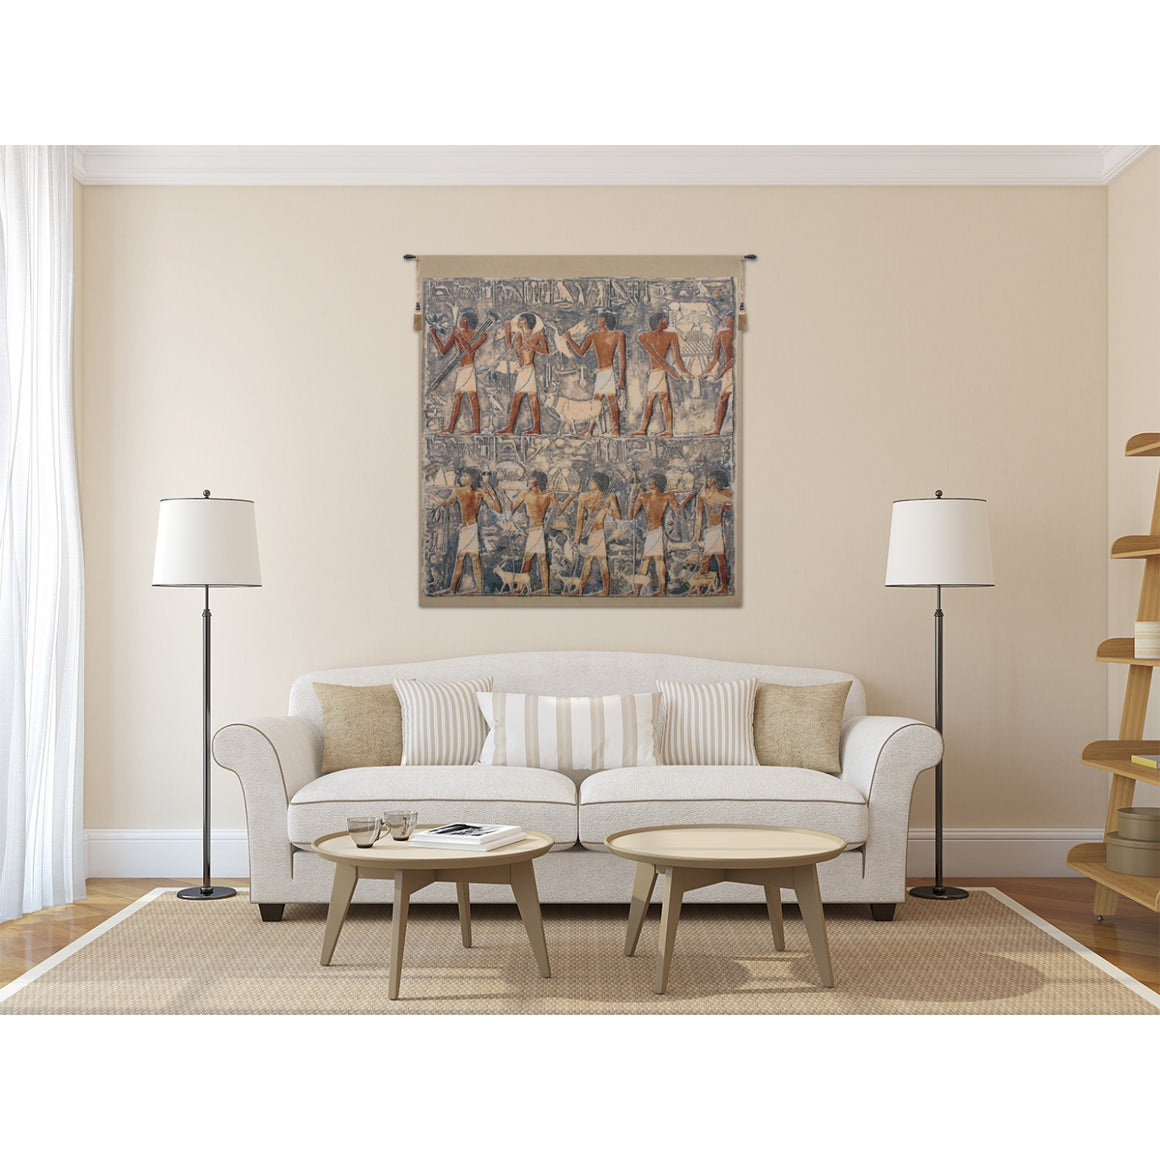 Saqqarah Blue European Hanging Wall Tapestry